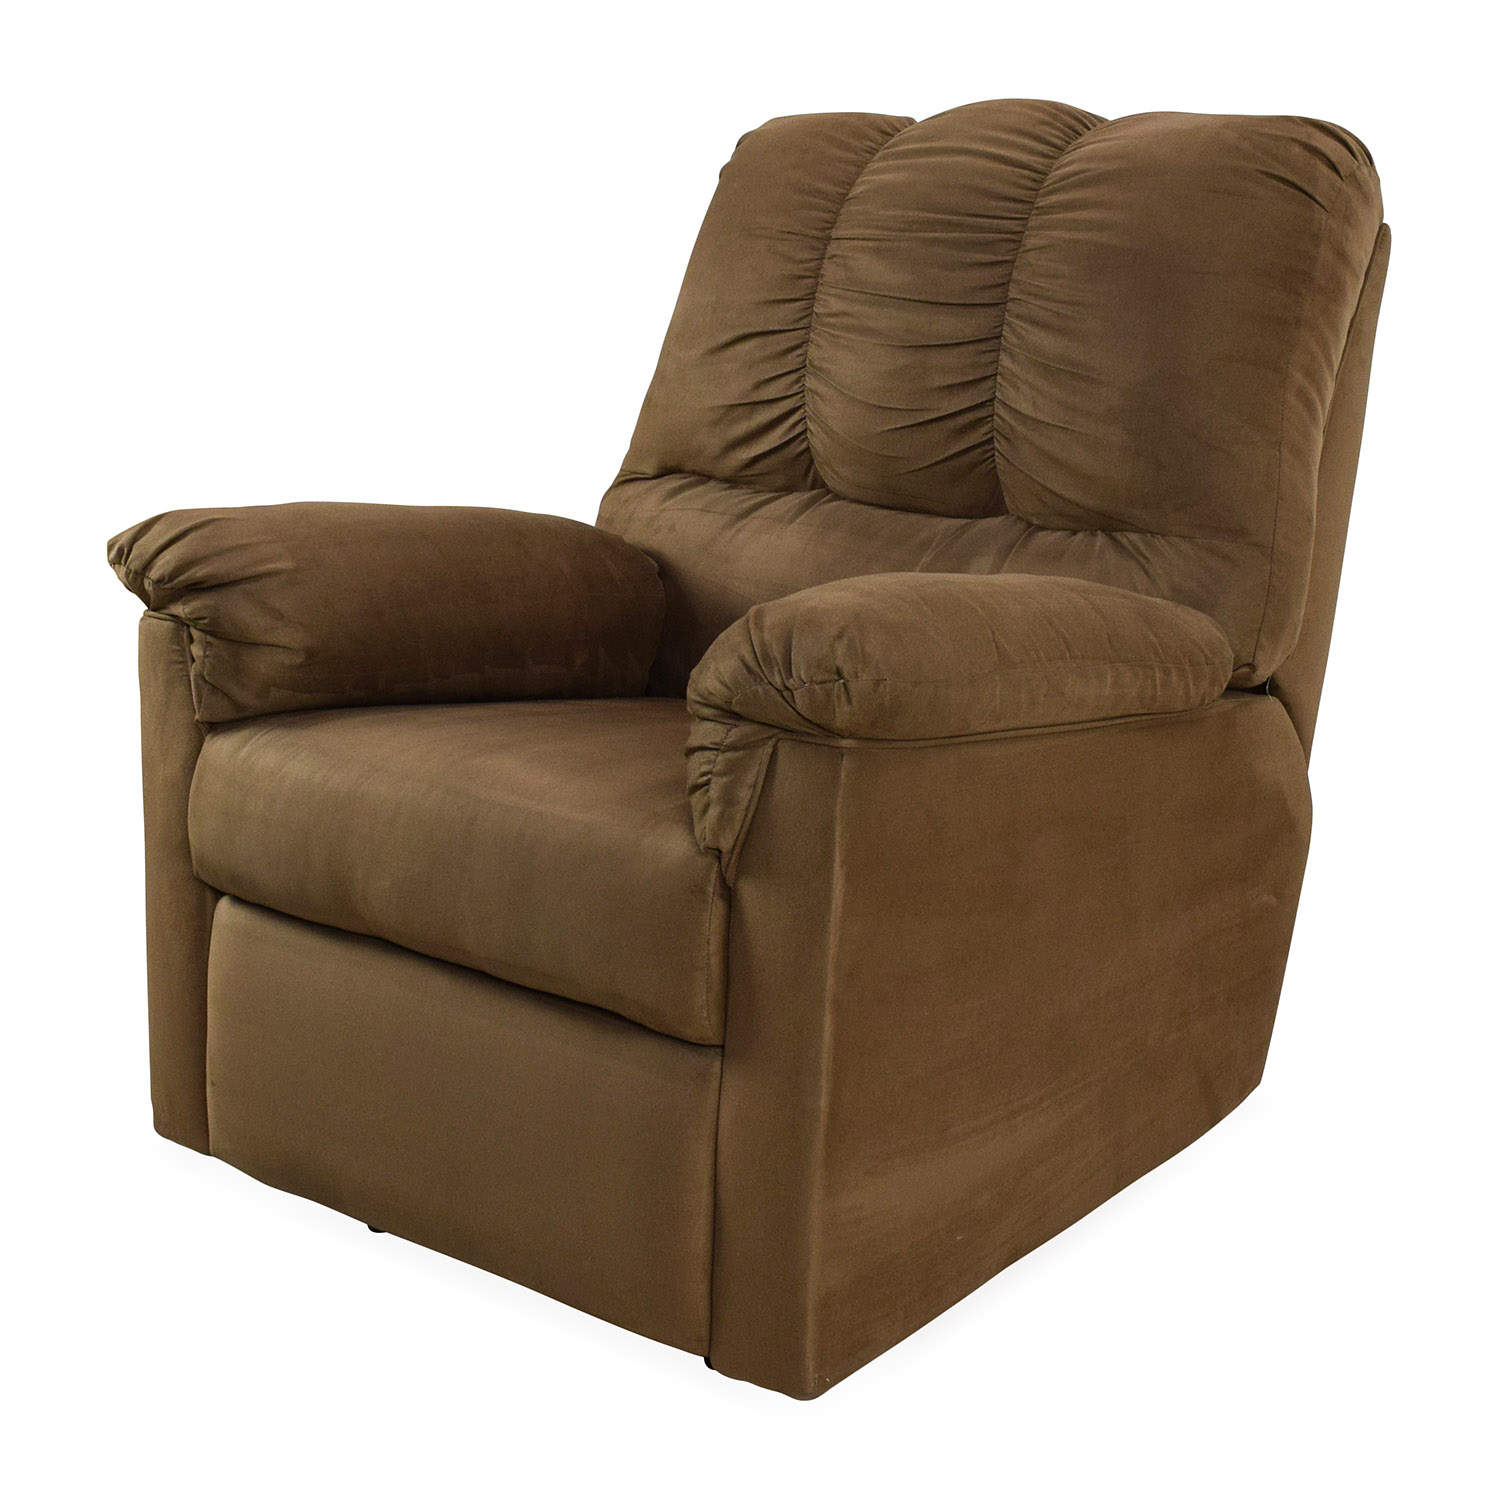 Ashley Recliner Chair 73 Off Ashley Furniture Ashley Furniture Darcy Rocker